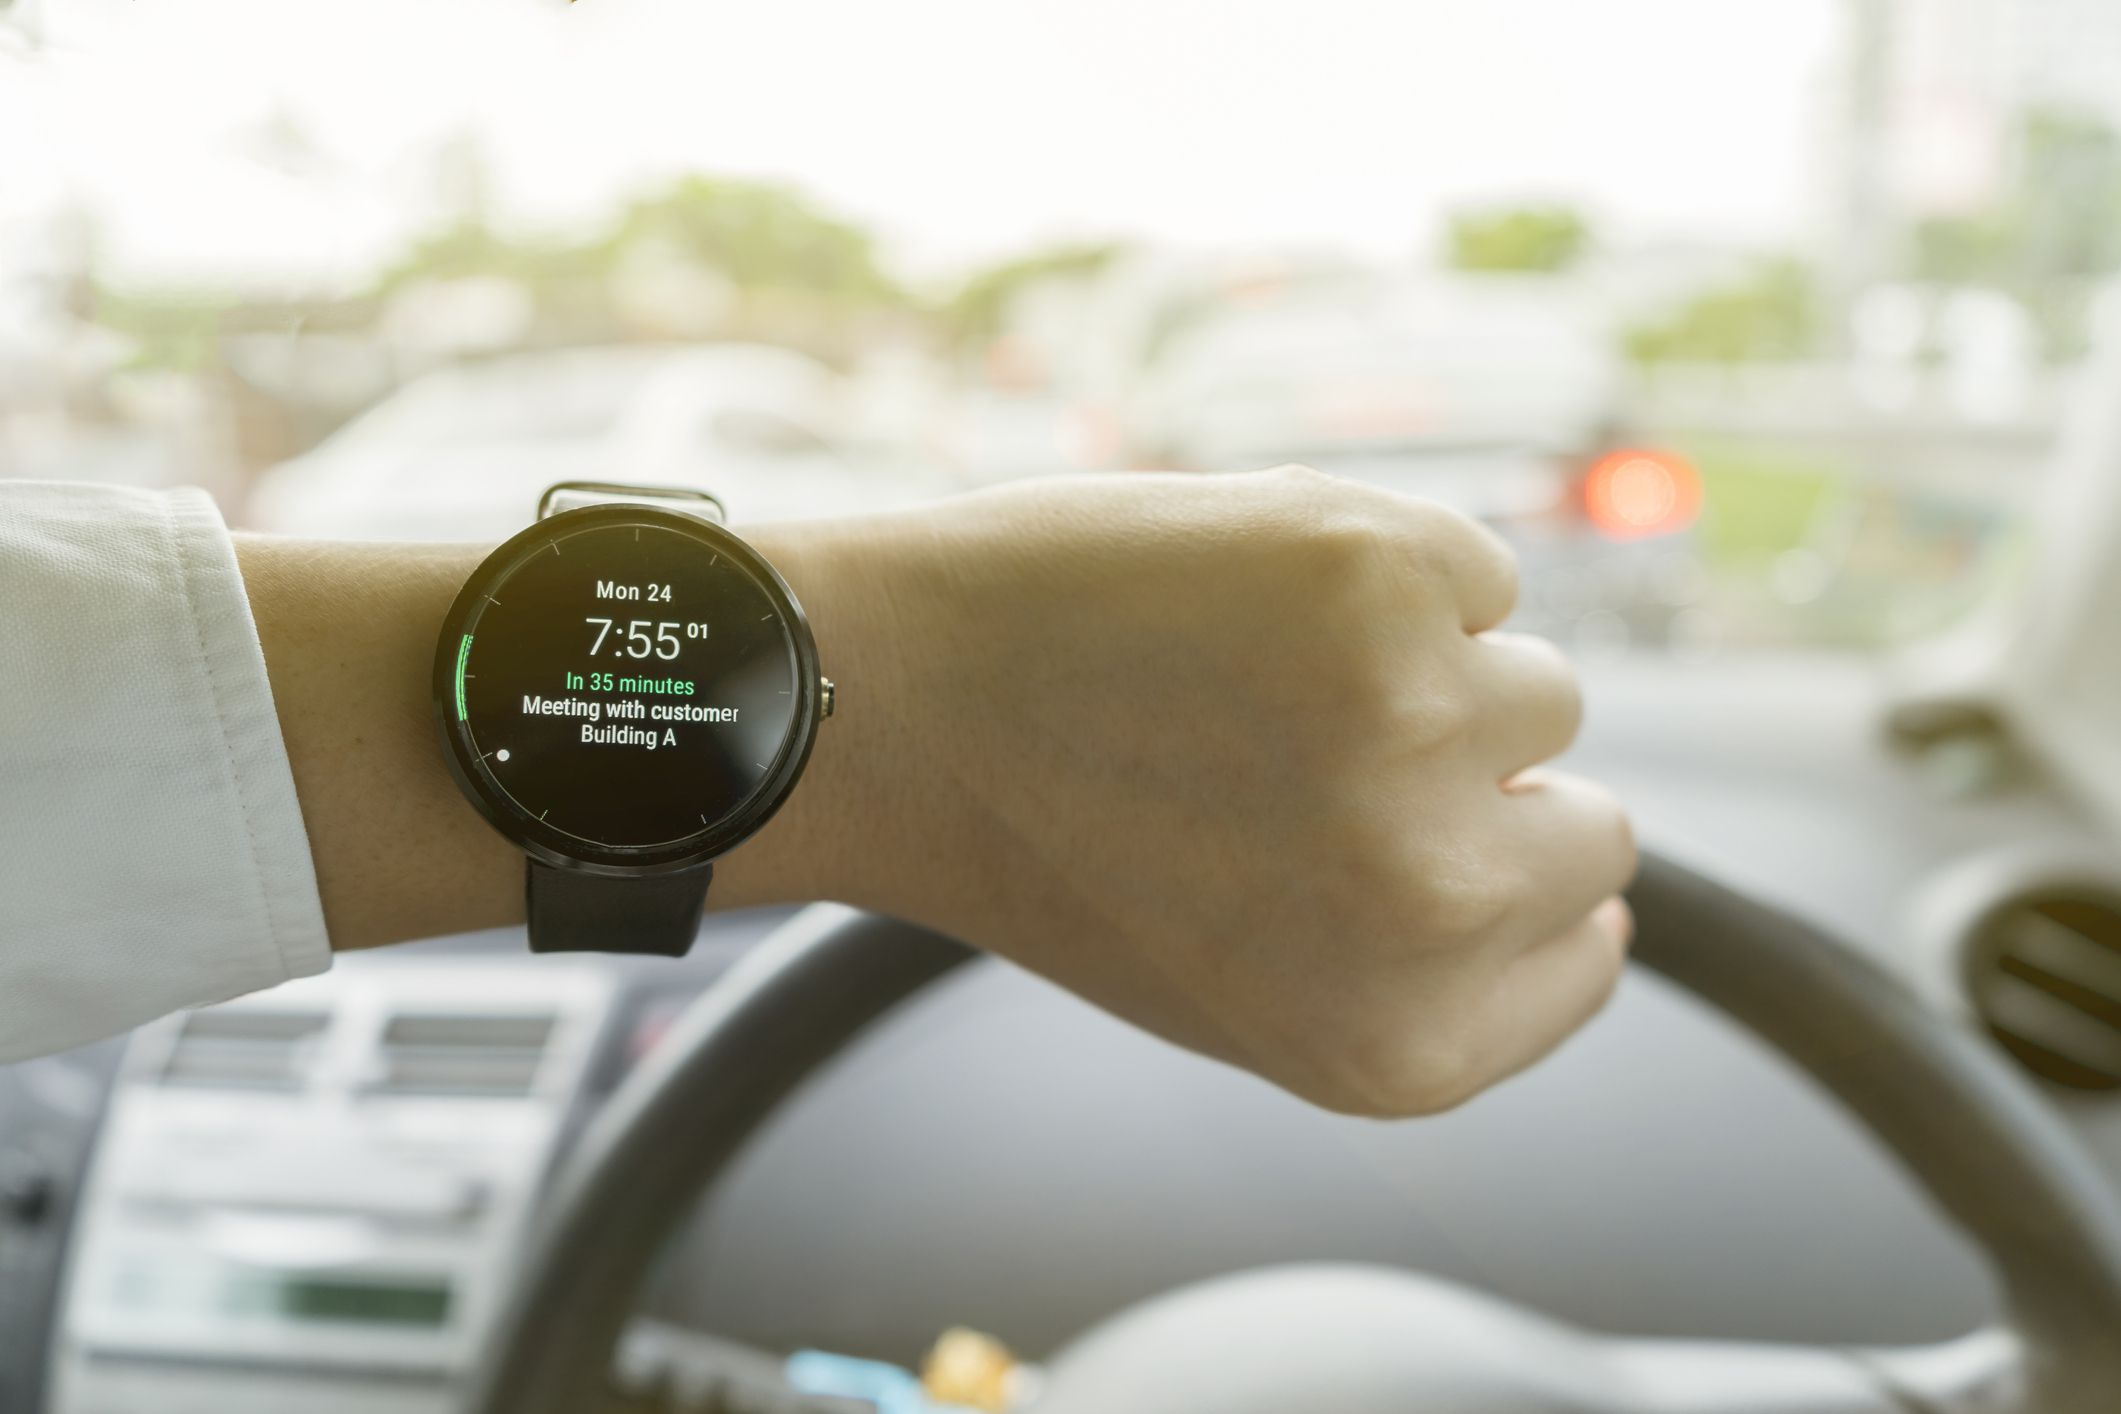 Man looking at smartwatch while driving